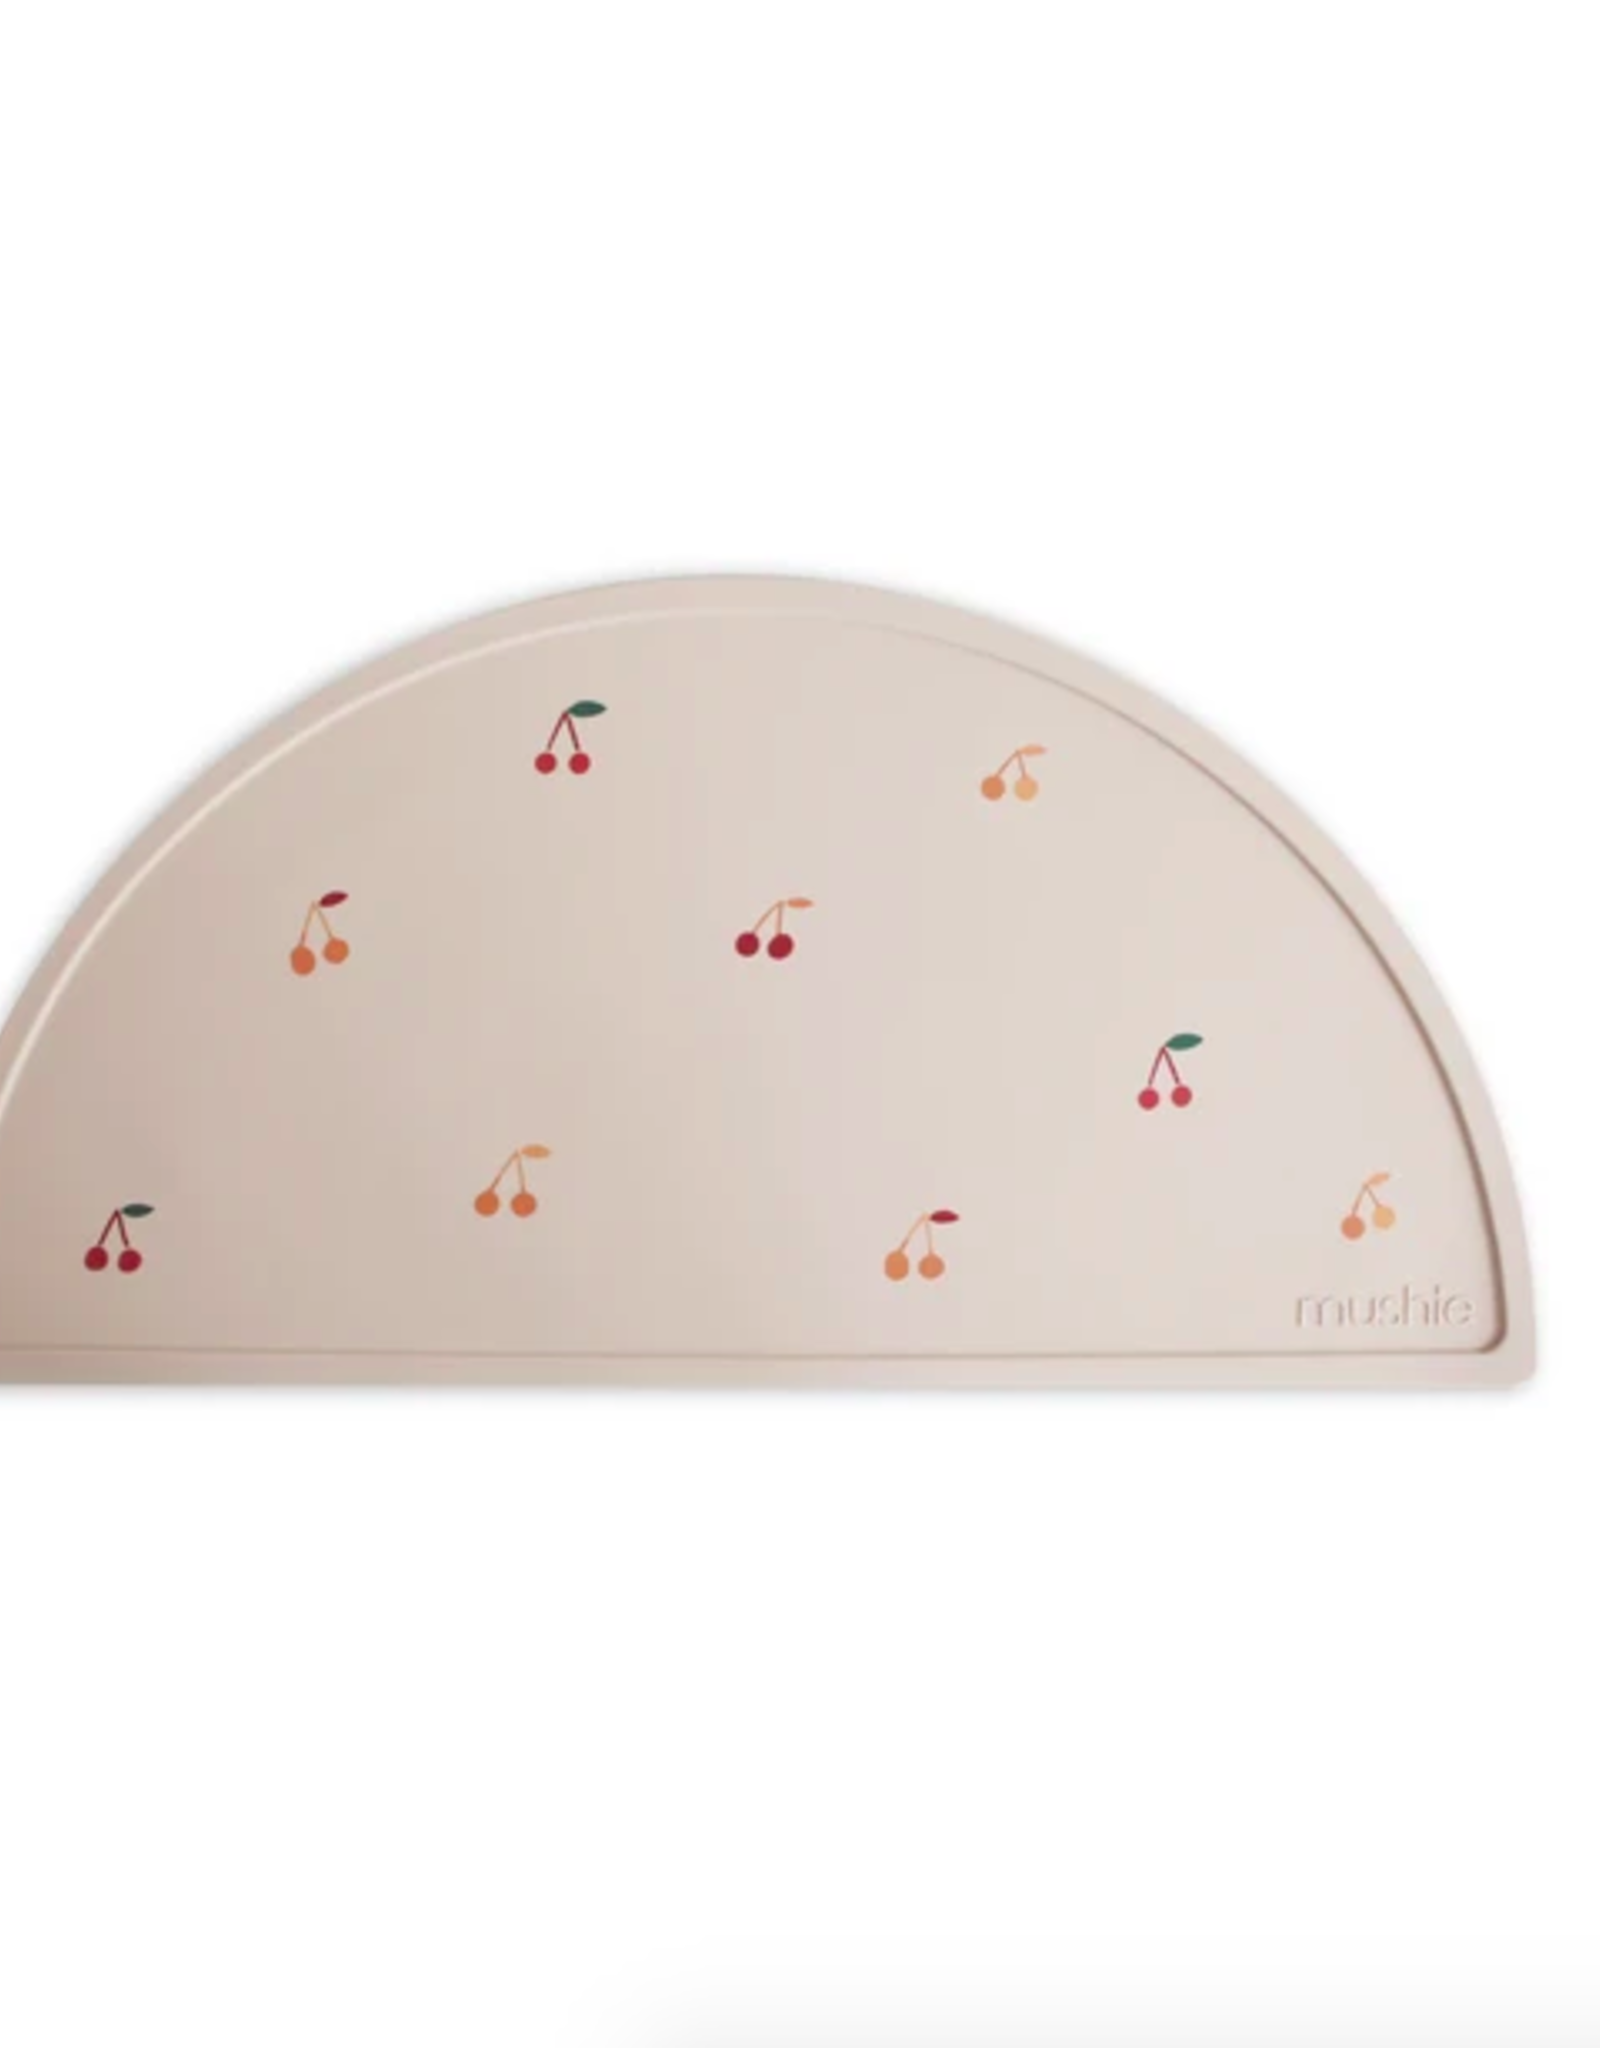 Silicone Place Mat - Cherries